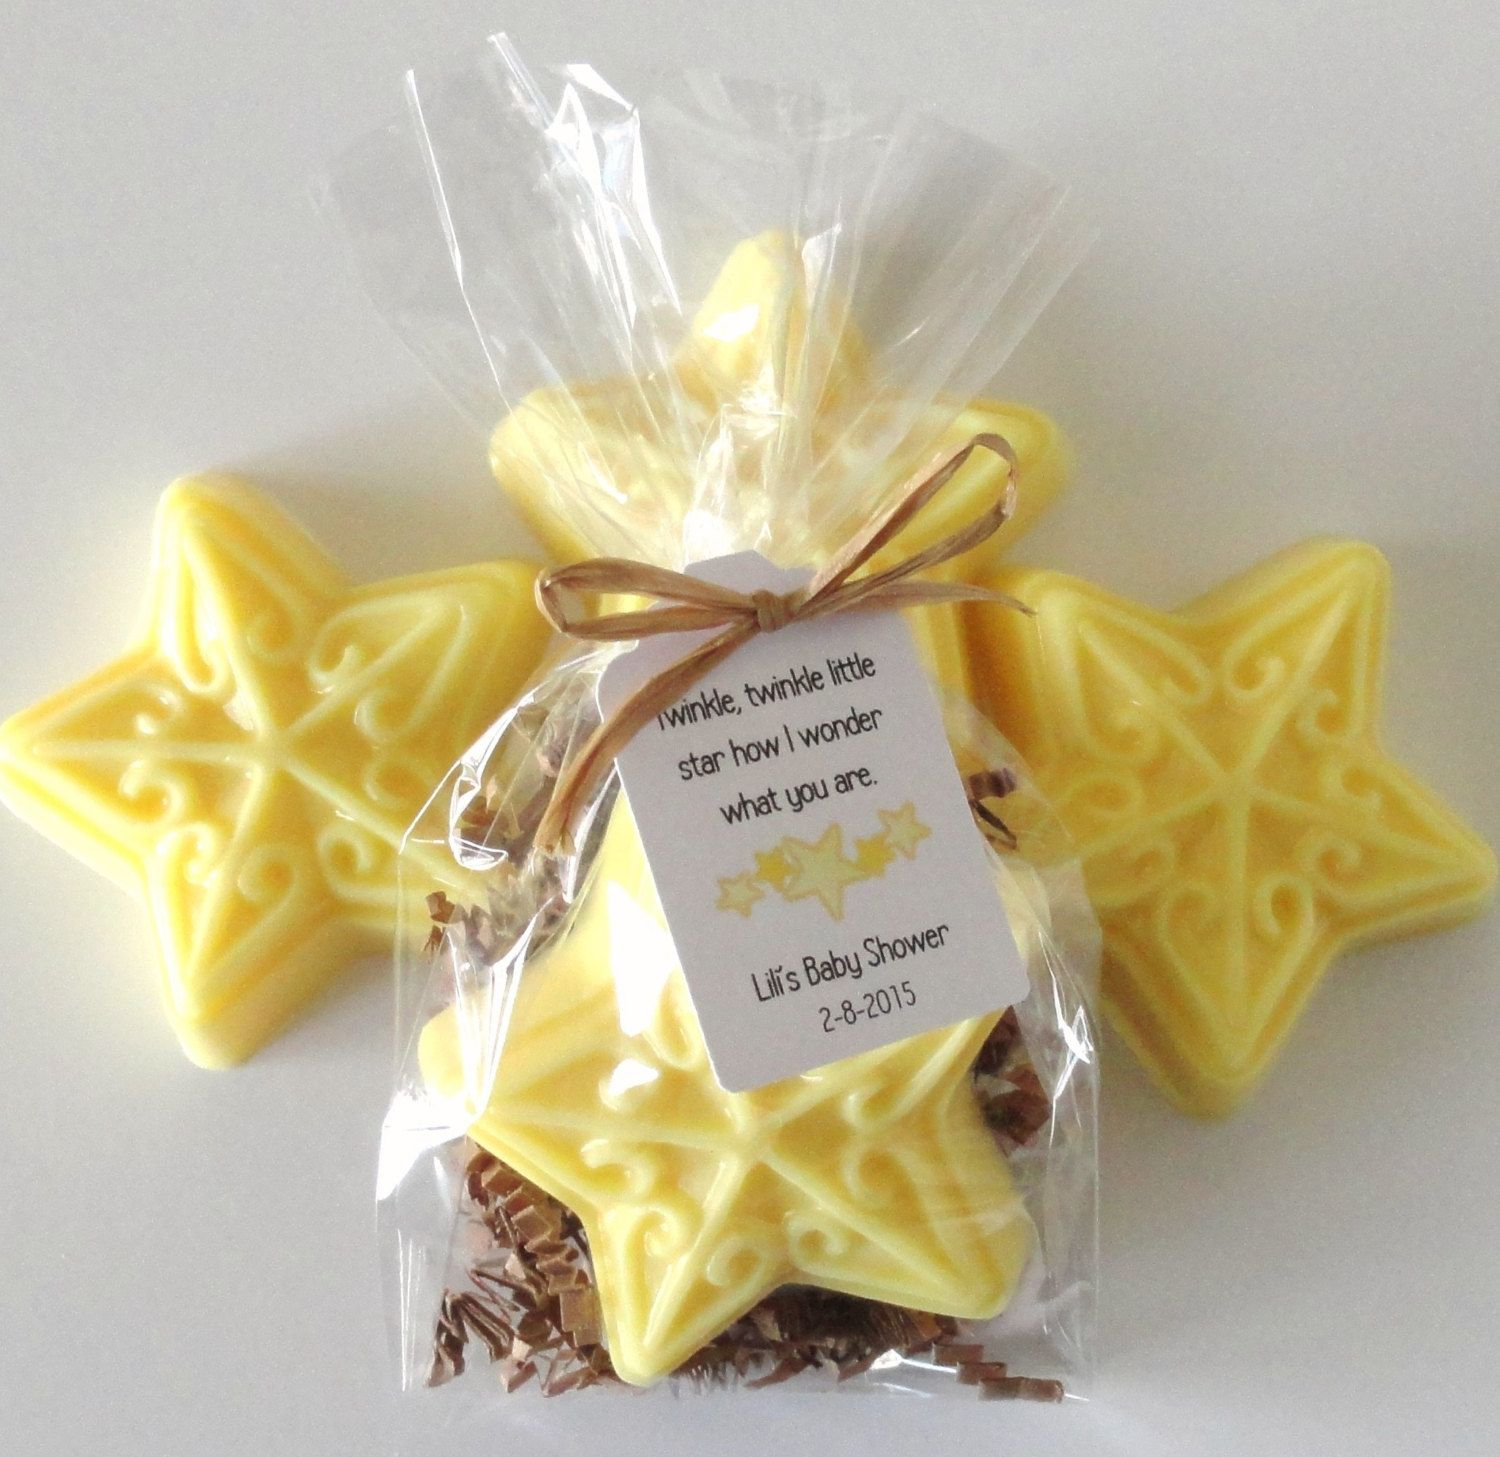 Star Soap Baby Shower Favors With Custom Tags Twinkle